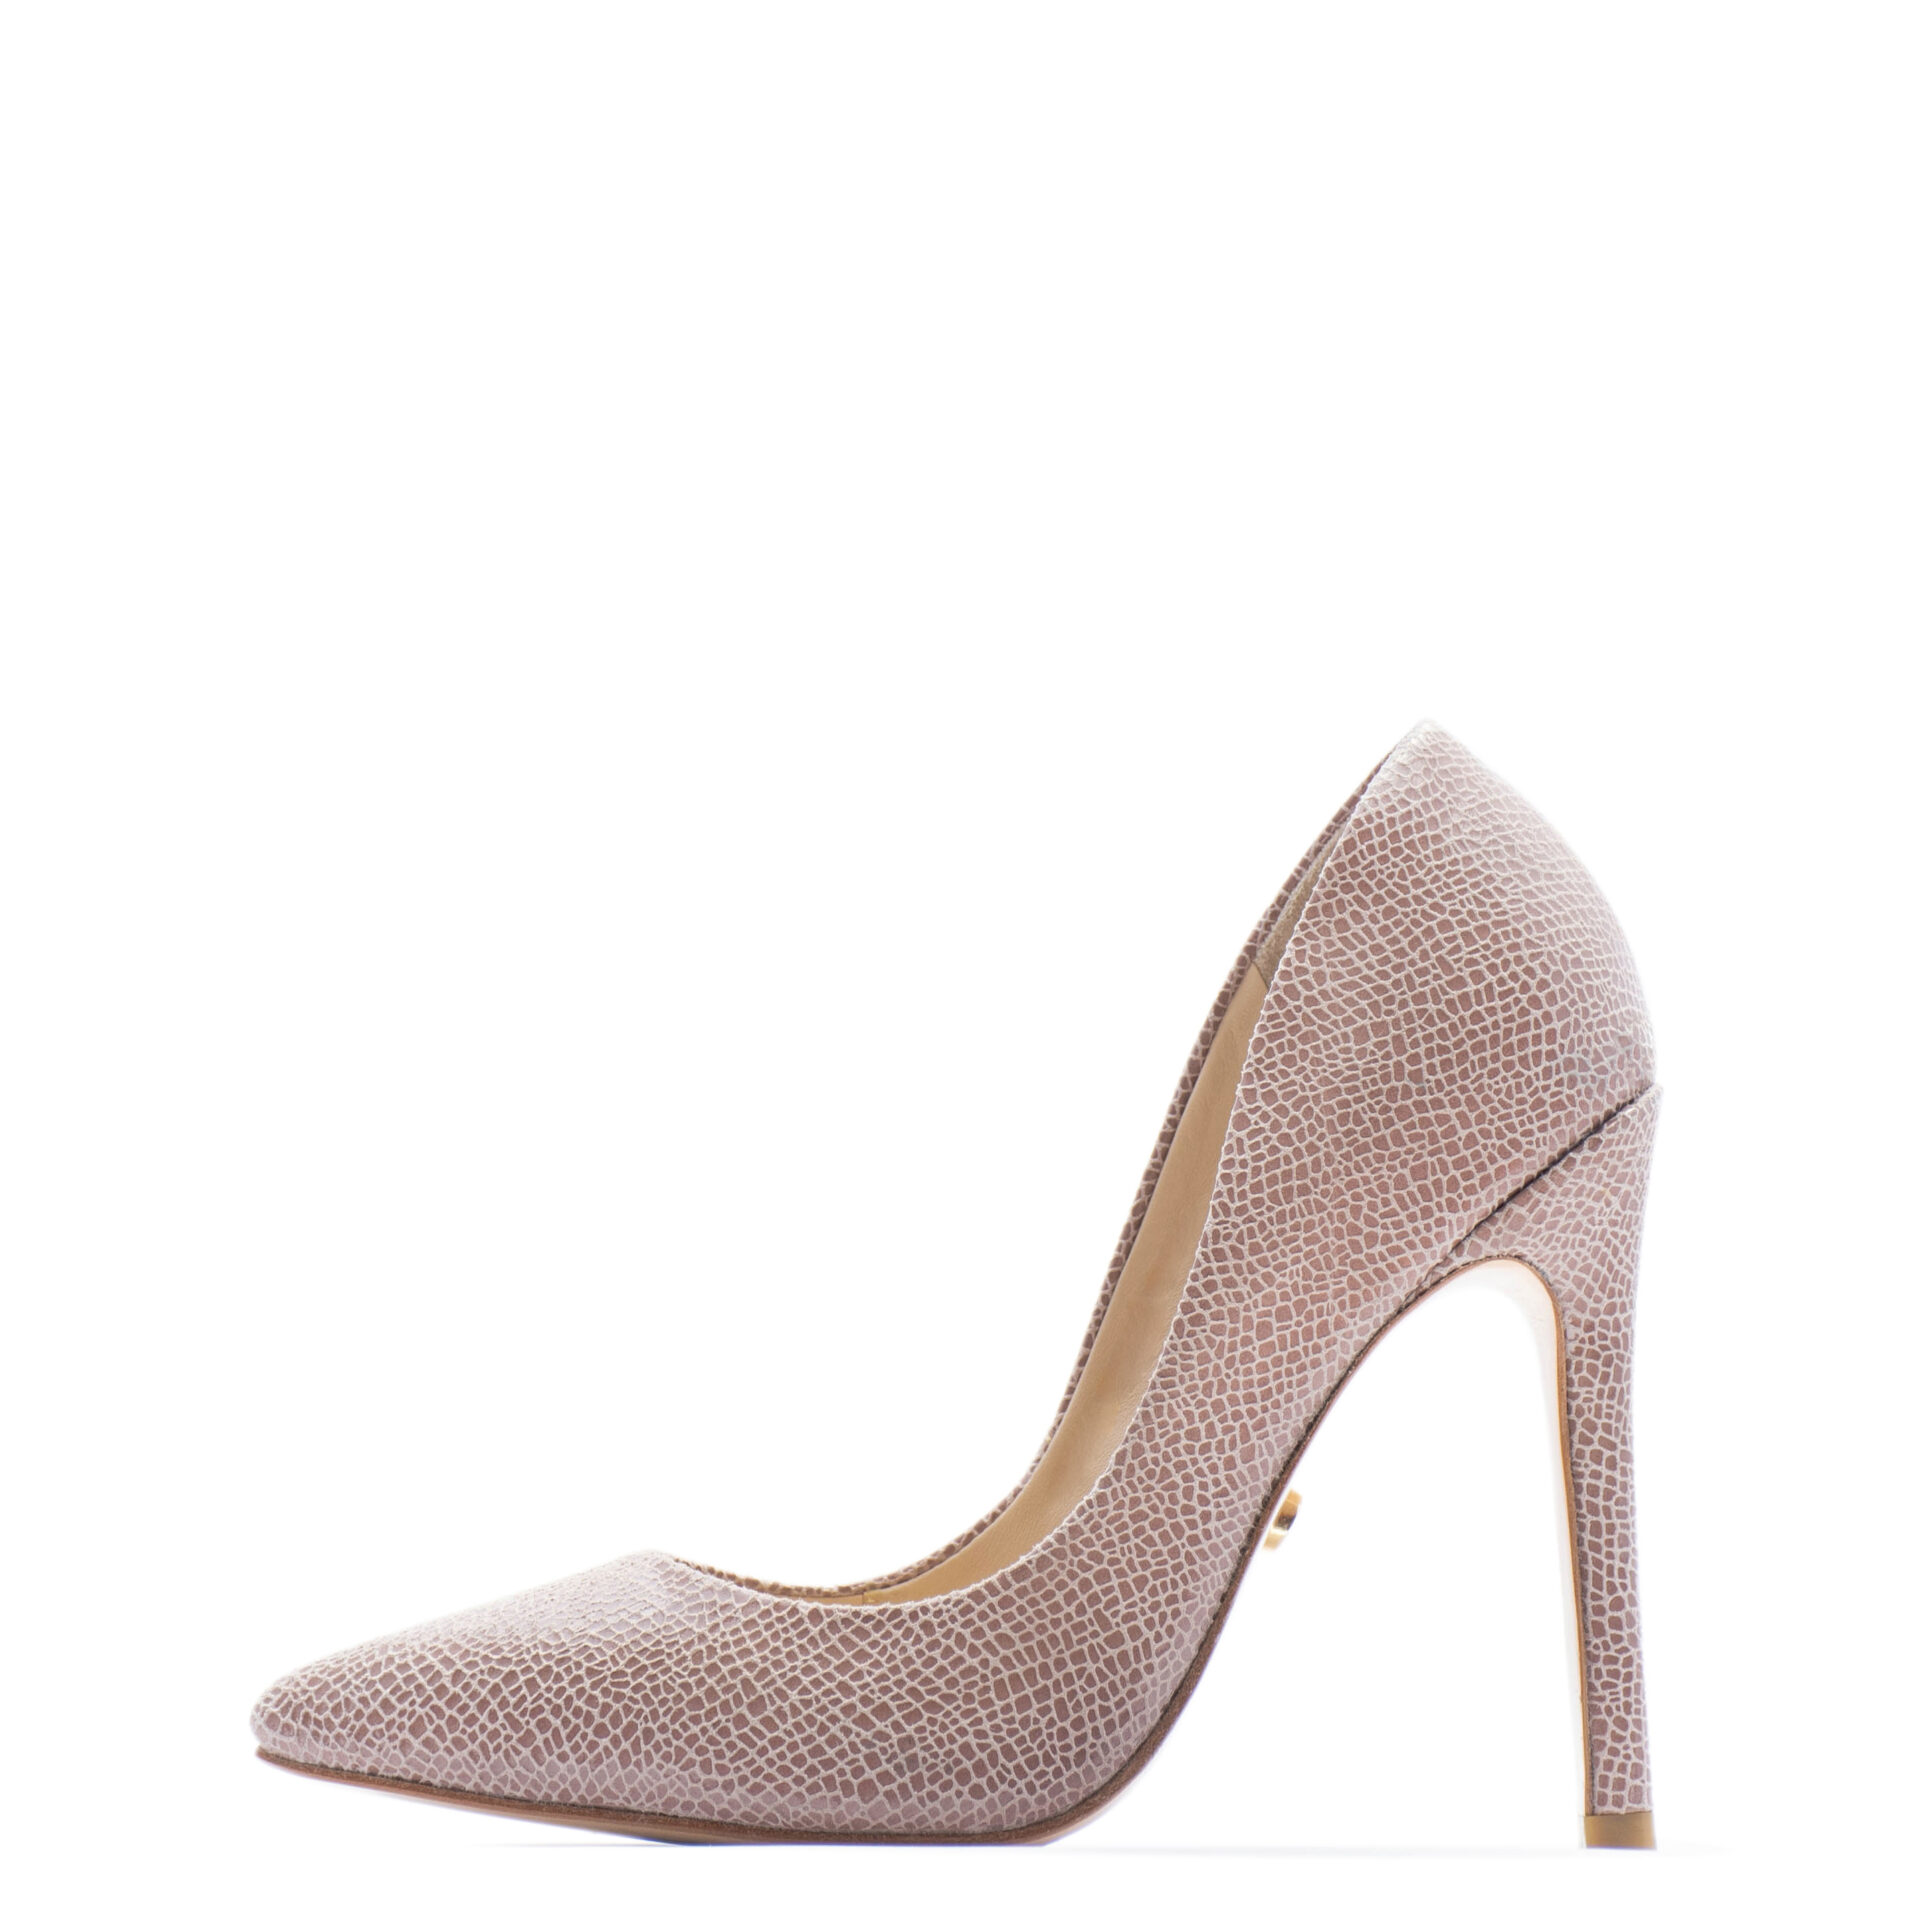 rose nude pointed high heels for men & Women